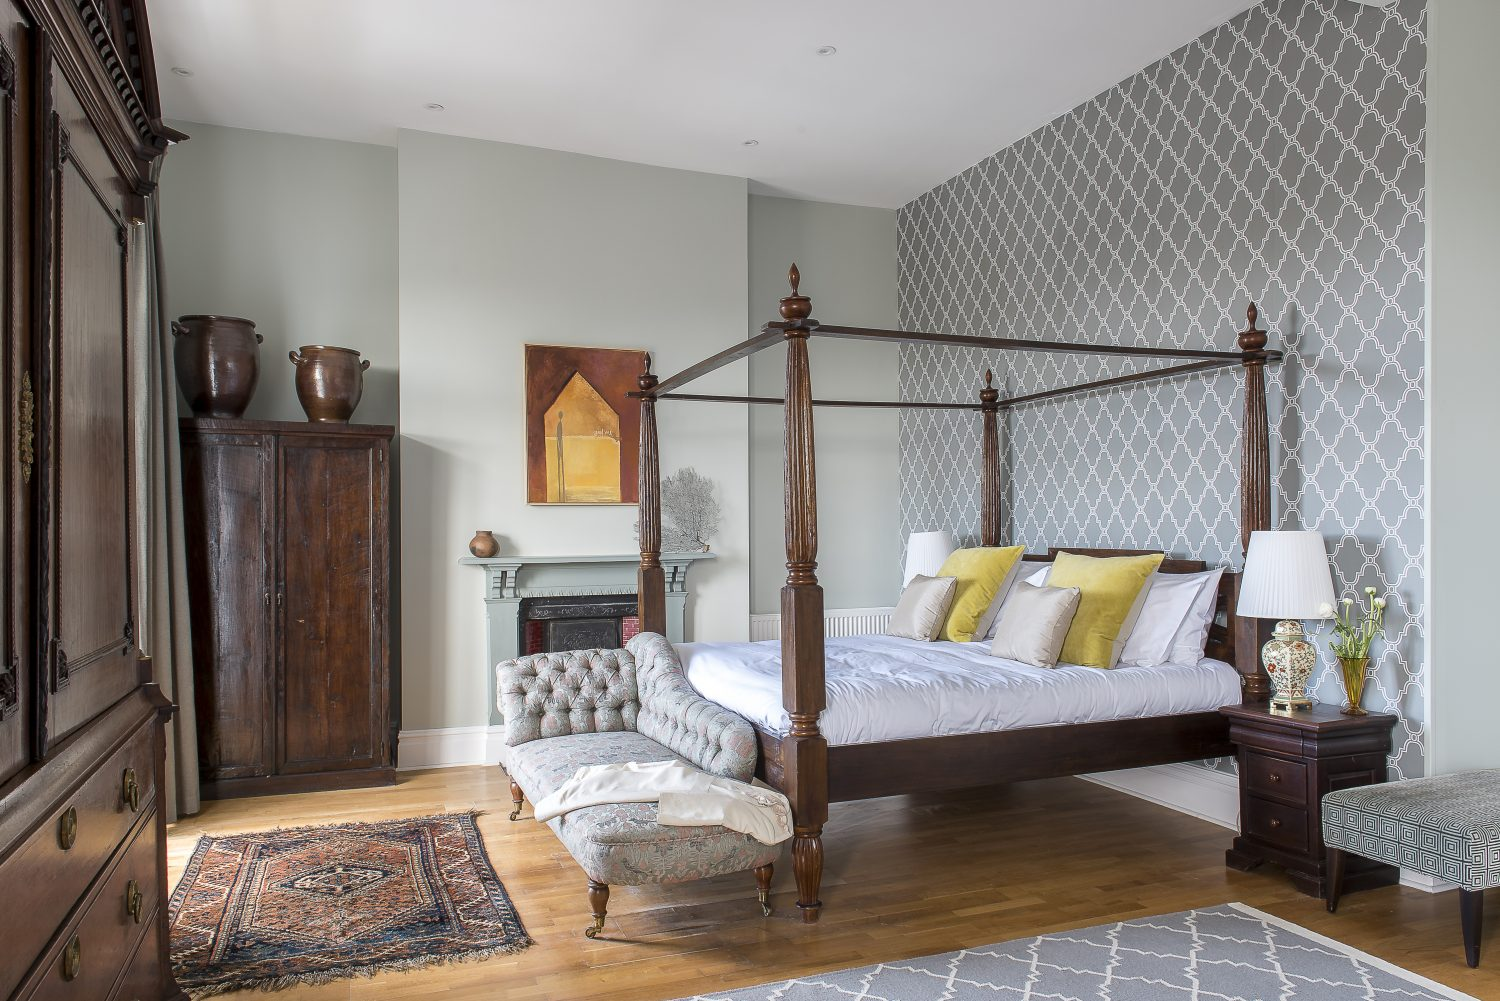 The huge master bedroom is home to a splendid 17th century armoire. The four-poster frame bed was tracked down on eBay